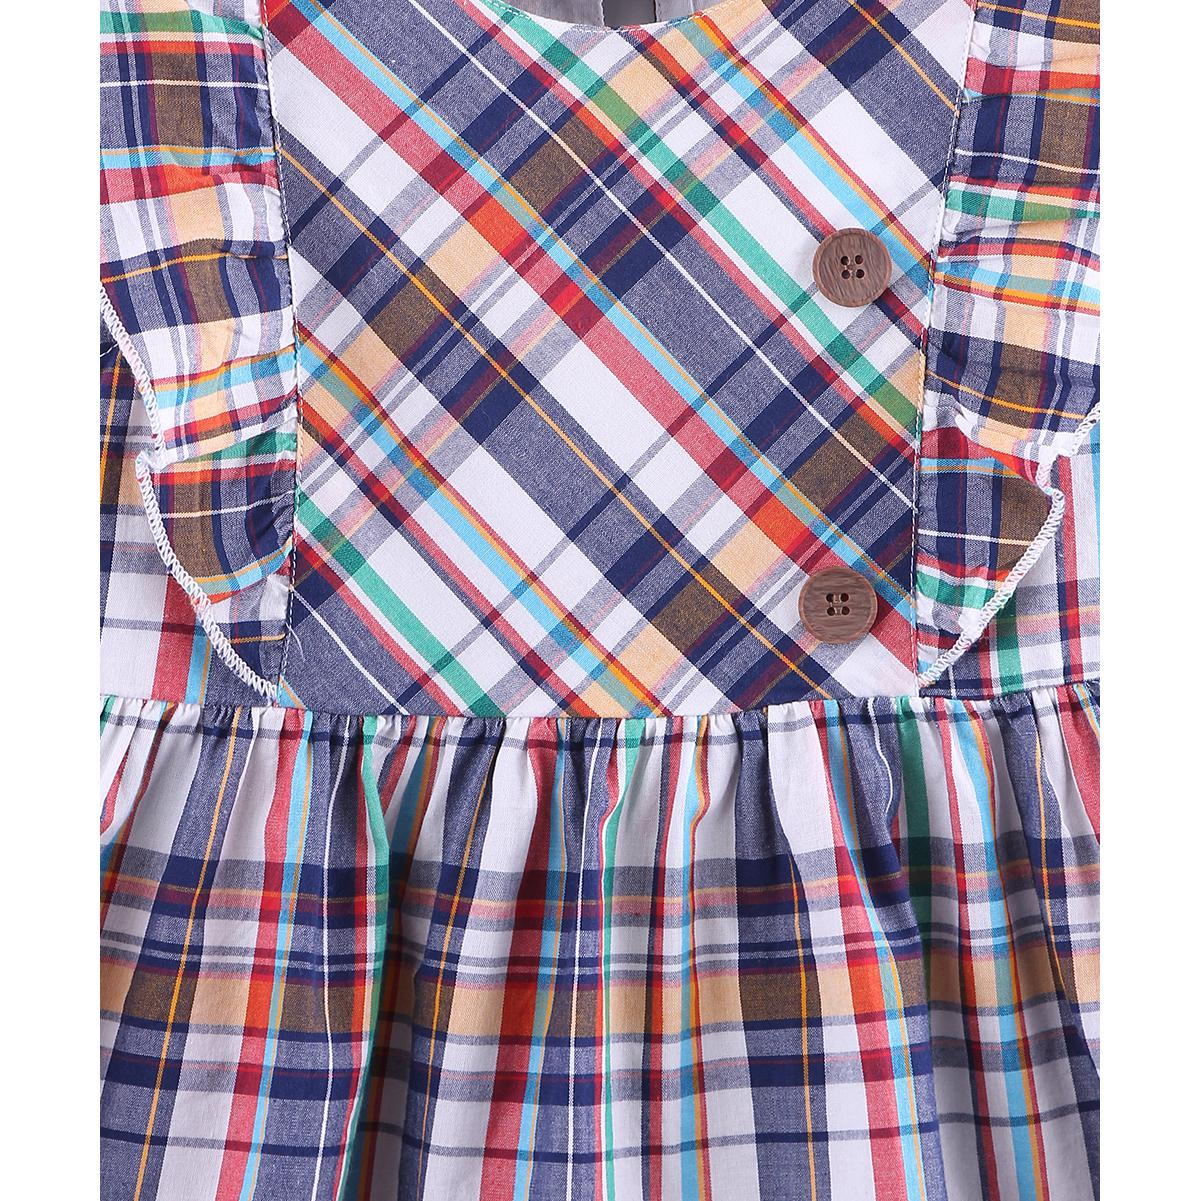 Beebay - Multior Colored Ruffled Y/D Check Cotton Dress For Girls